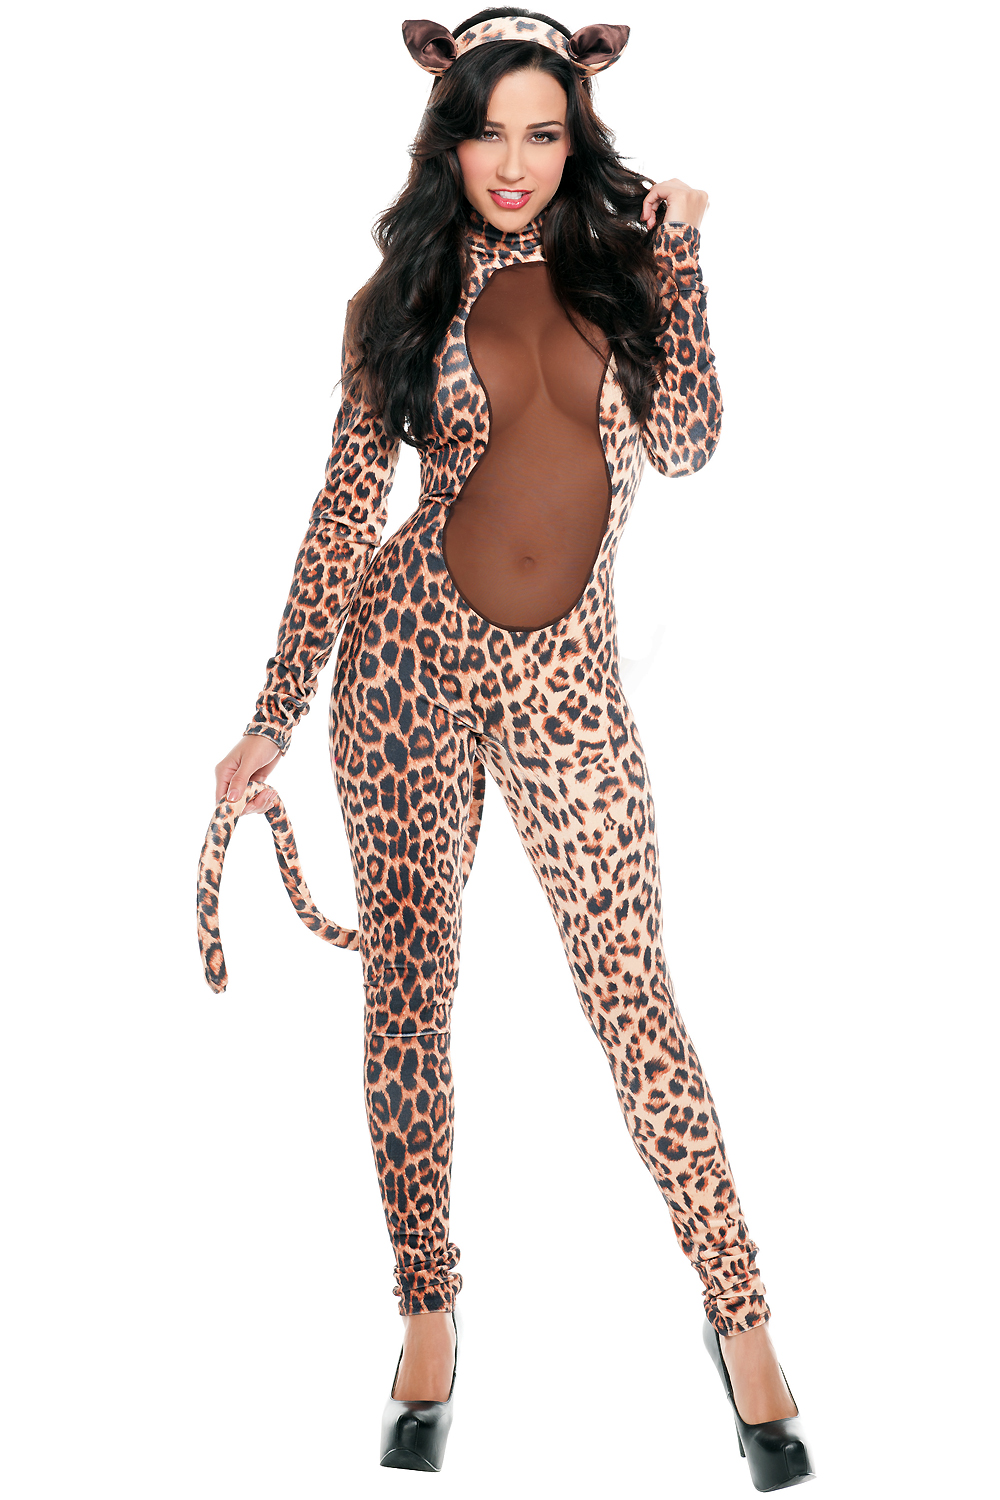 2017 New Sexy and Wild Womens Starline Kitty Costume Leopard Jumpsuit Body with Long Tail and Headpiece LC8754 Cosplay Costume(China (Mainland))